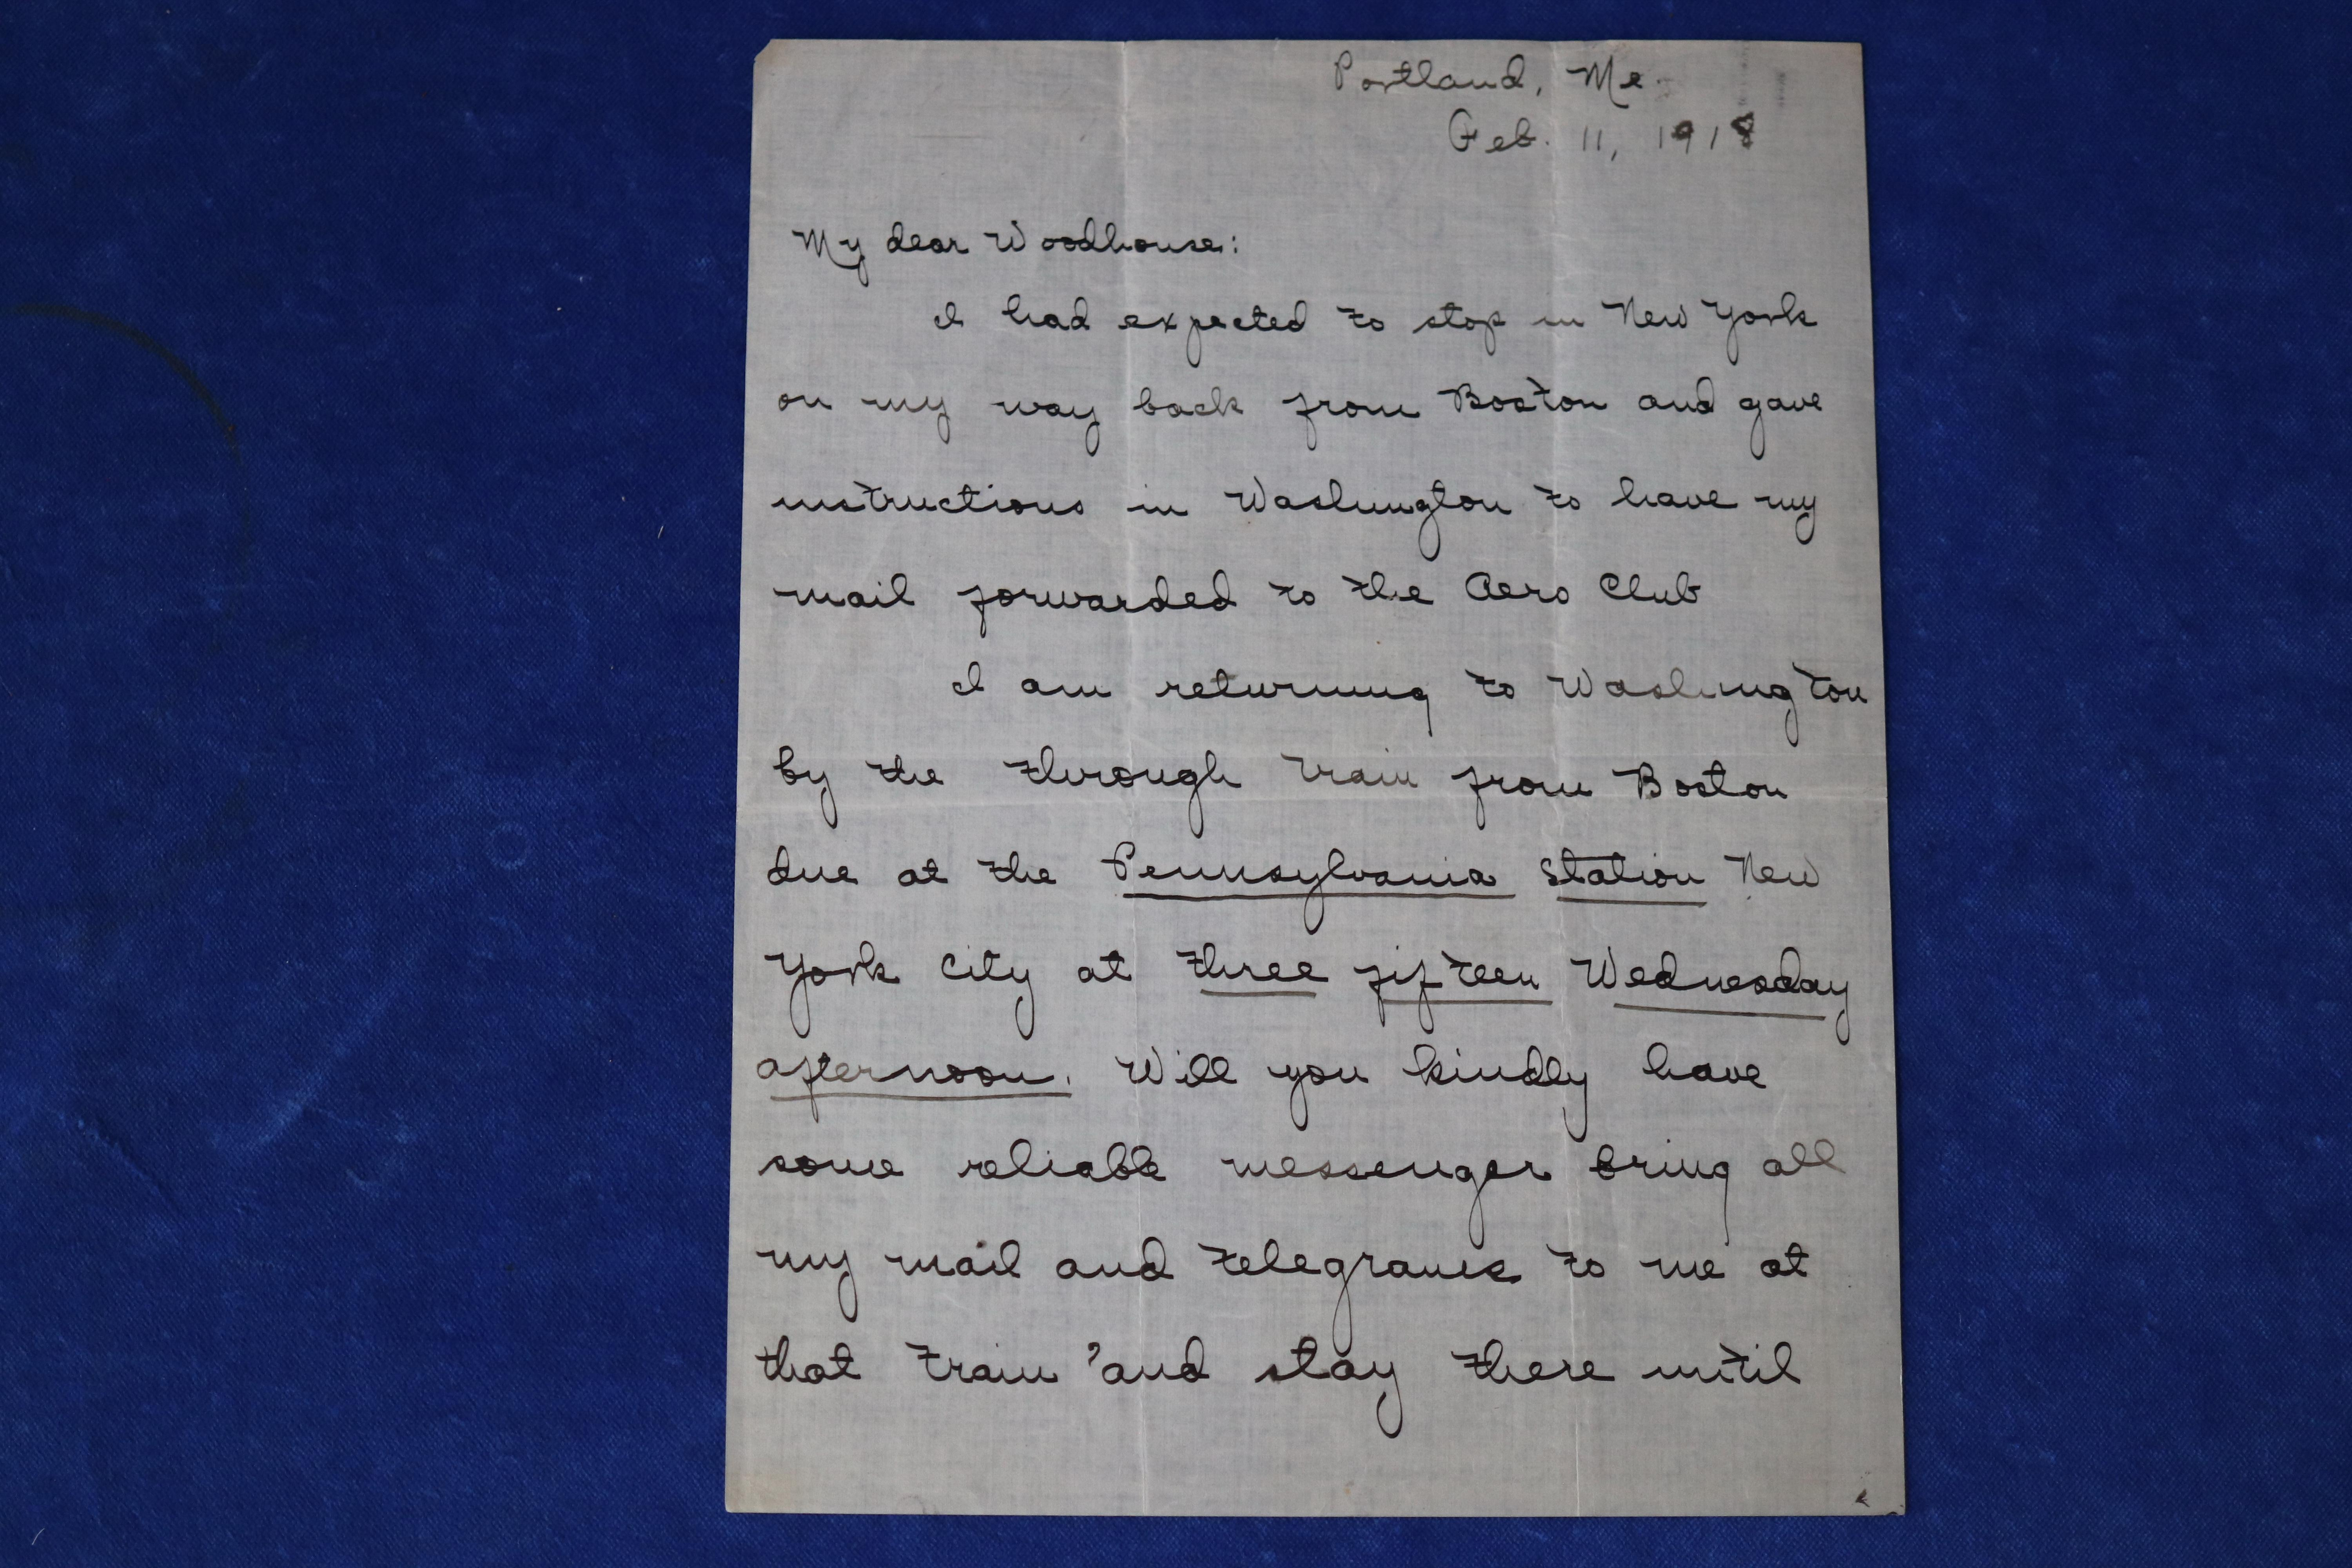 HAND-WRITTEN LETTER, SIGNED ROBERT E. PEARY, WRITTEN FEB 11 1918 IN BLACK FOUNTAIN PEN, CERTIFICATE OF AUTHENTICITY 100119